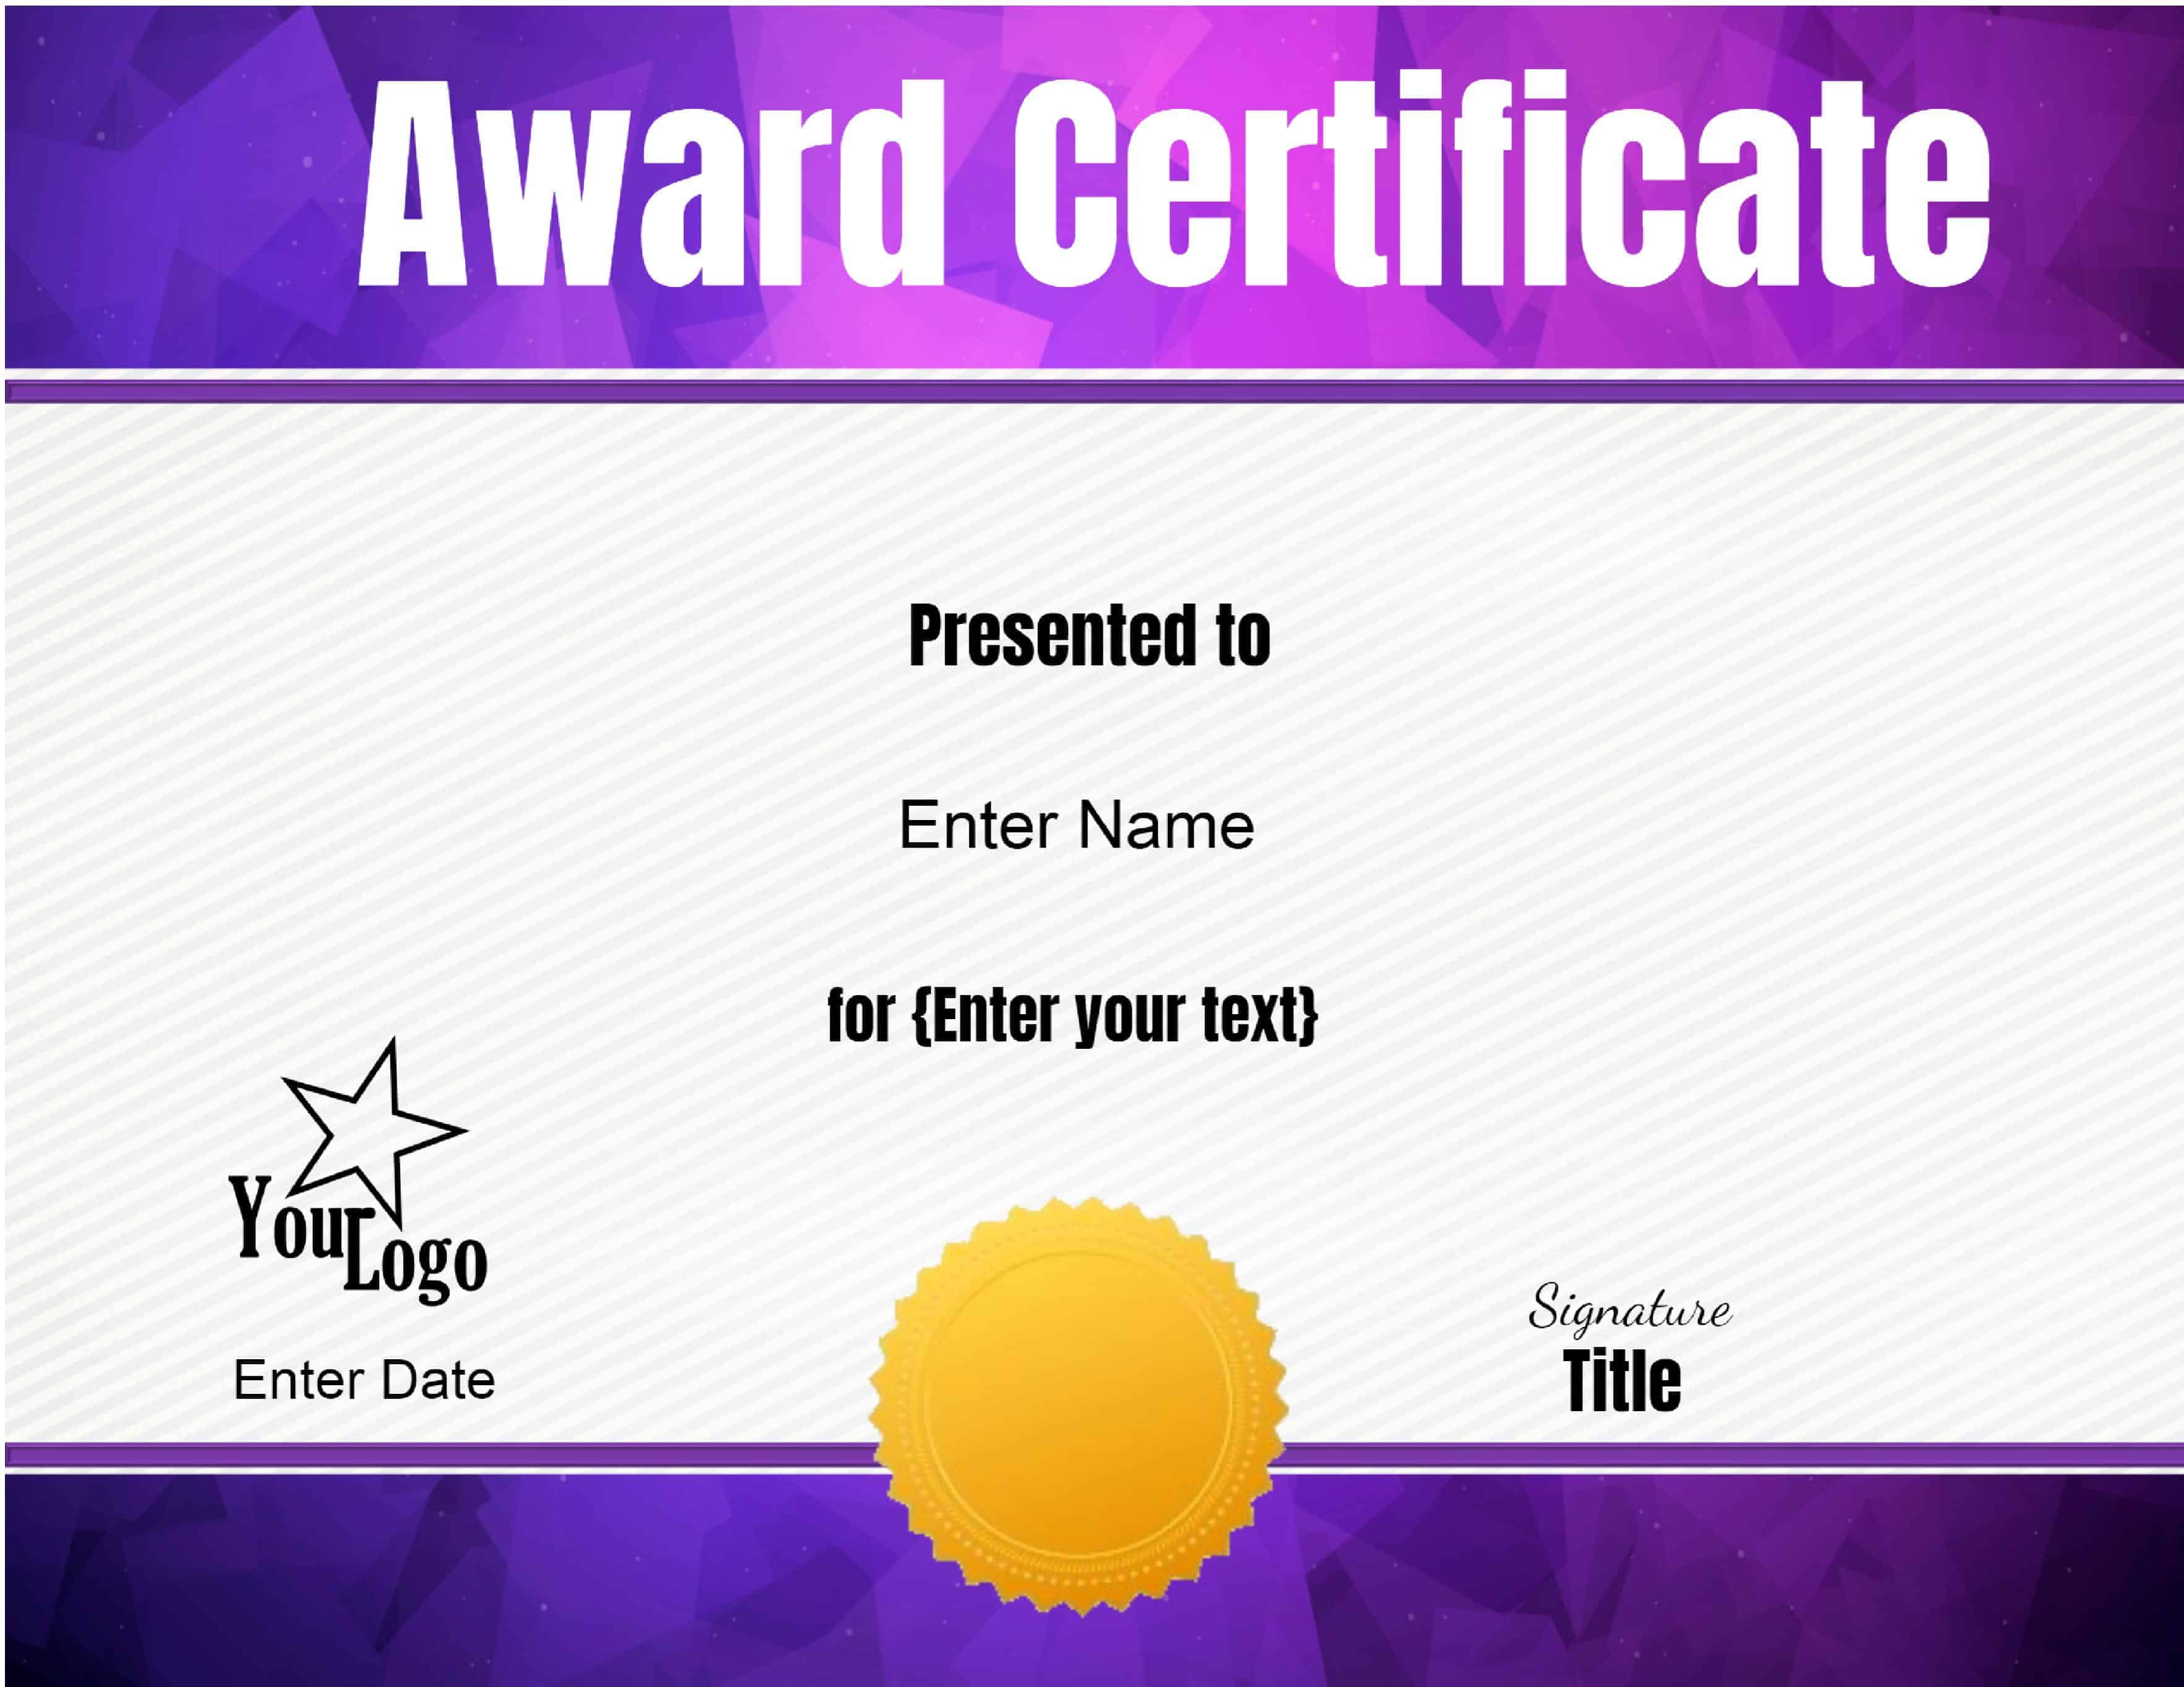 Certificate templates customize printwithout watermark customize printwith watermark 1betcityfo Images